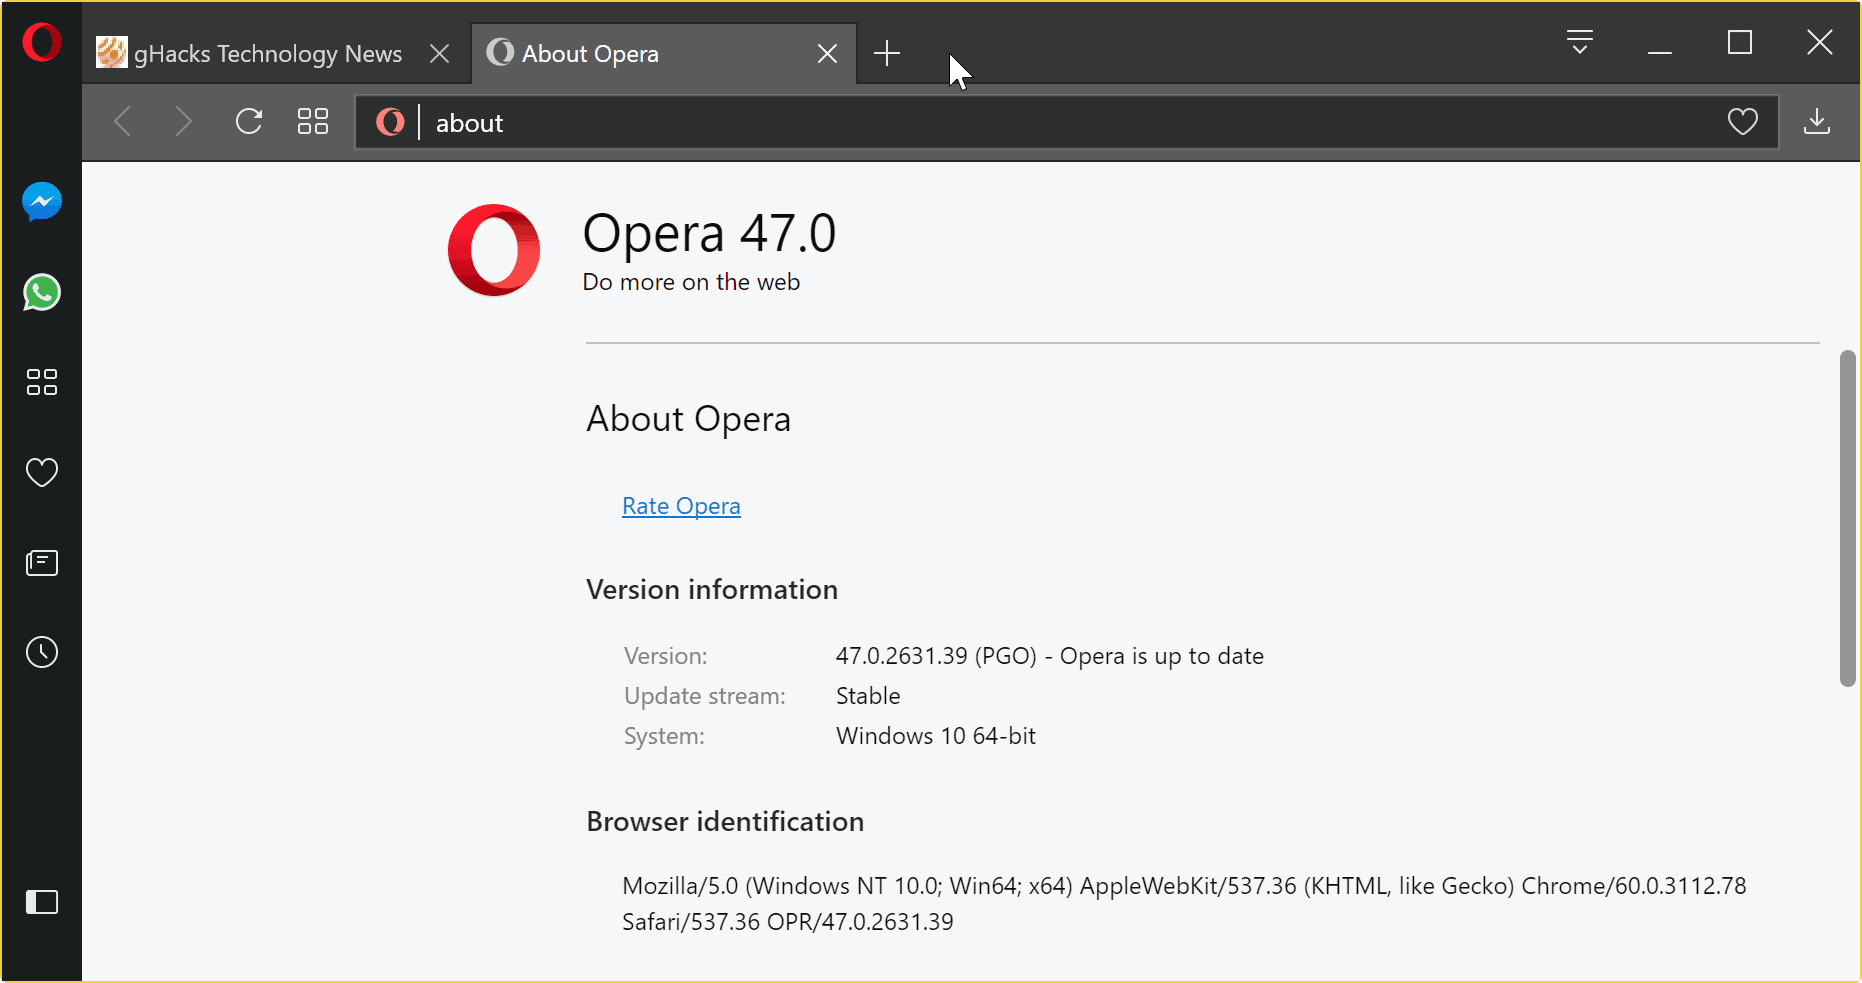 Opera 47 Stable improves usability